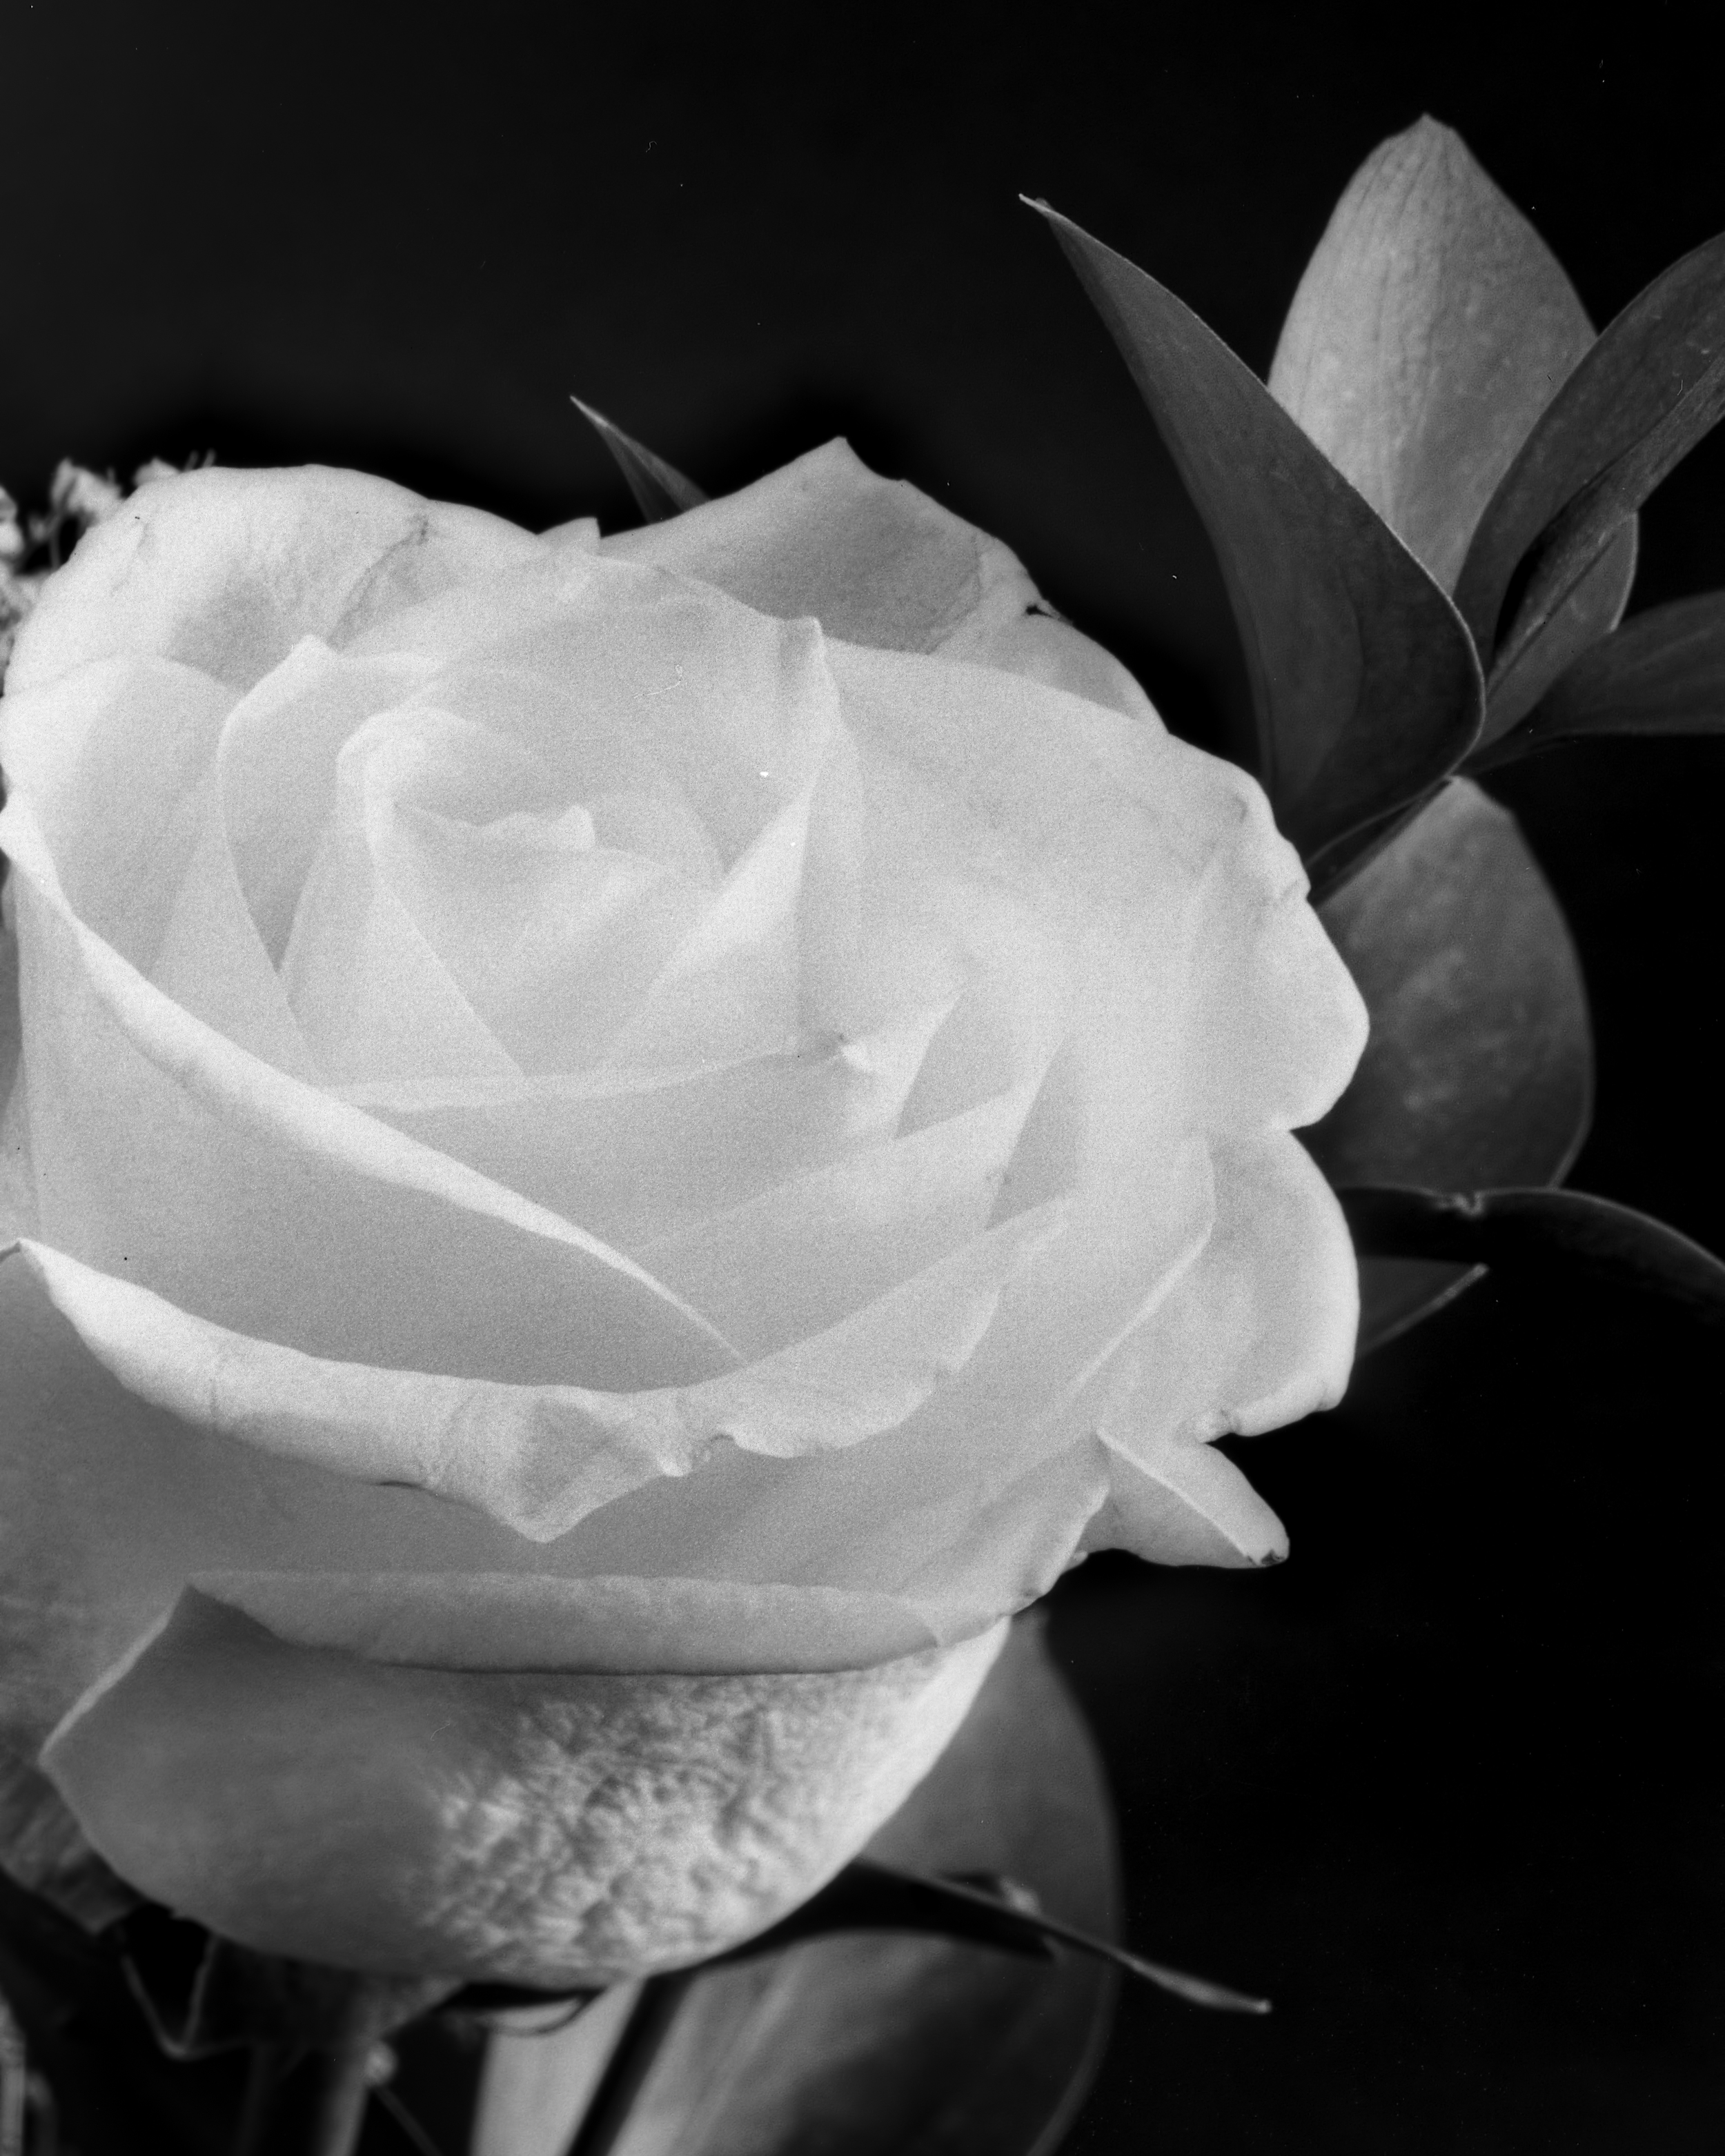 White Rose, Large format 4x5 film